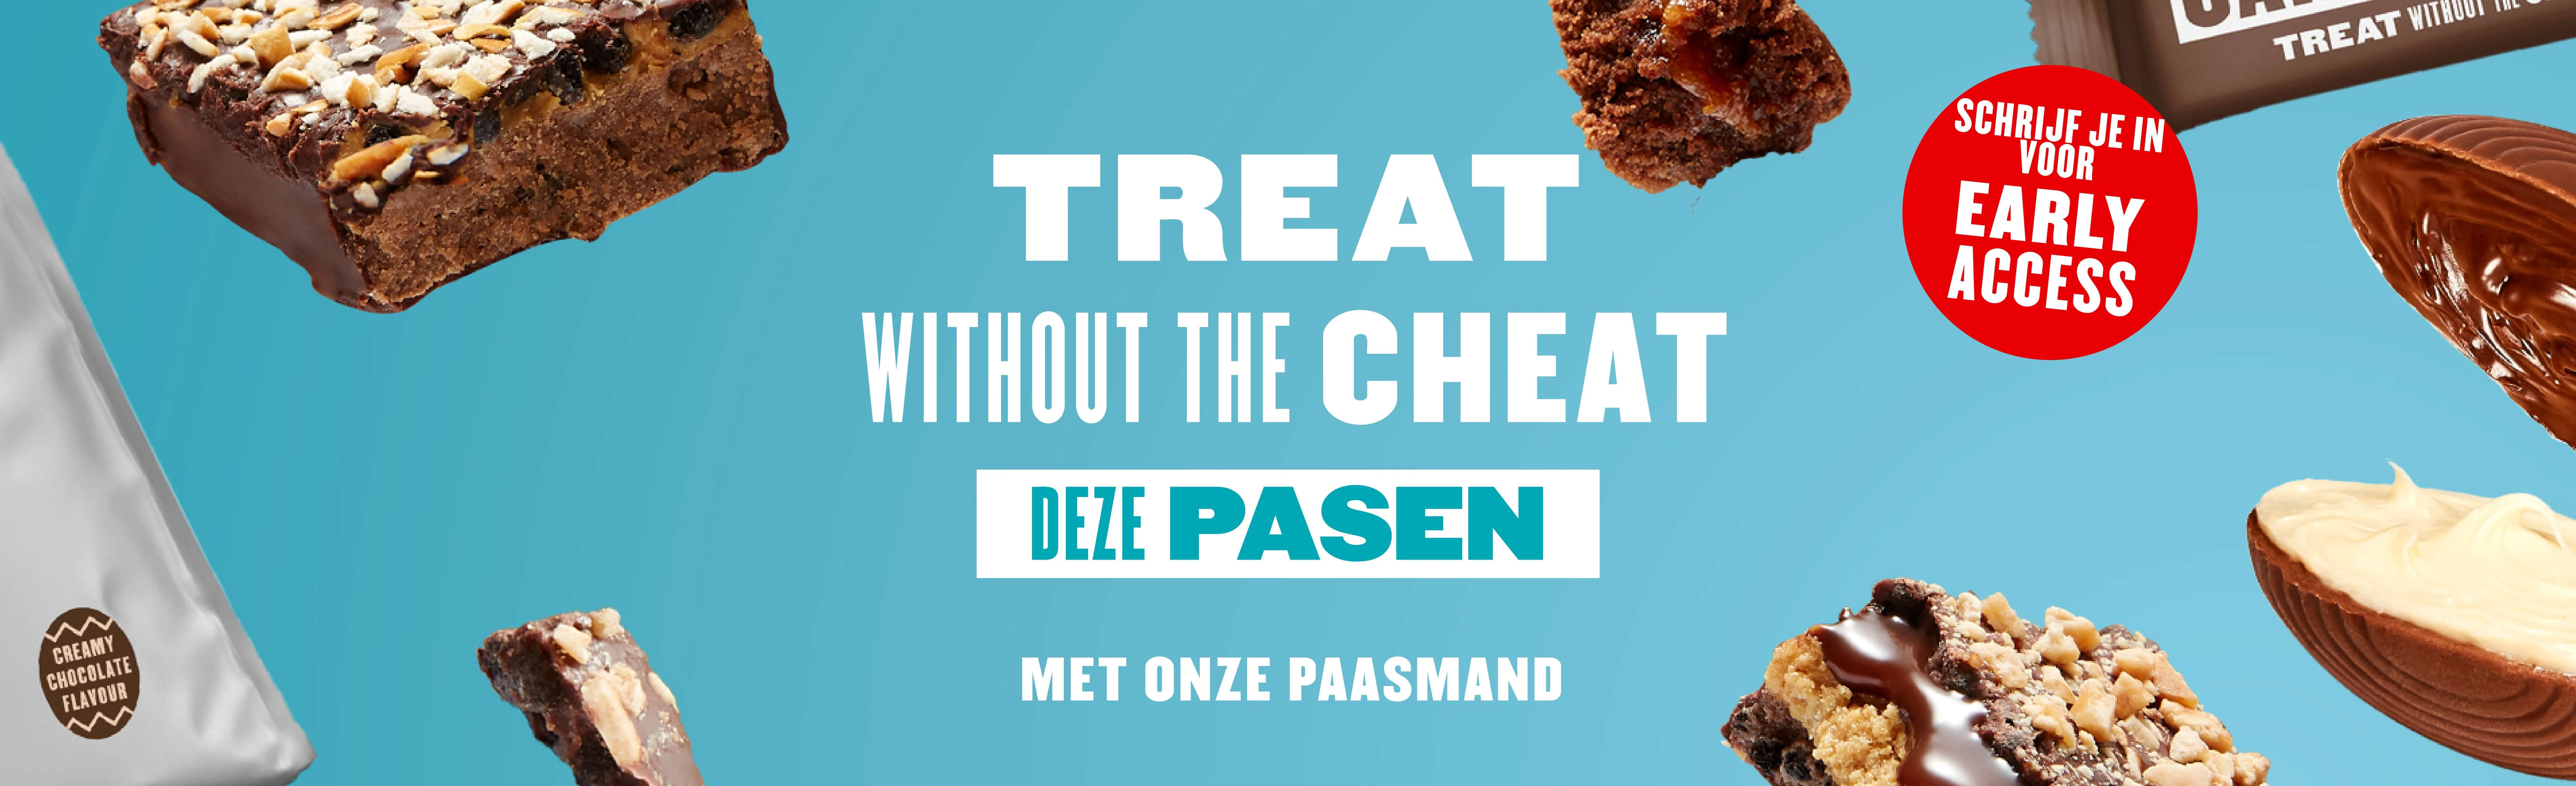 Treat without the Cheat deze Pasen met onze Paasmand